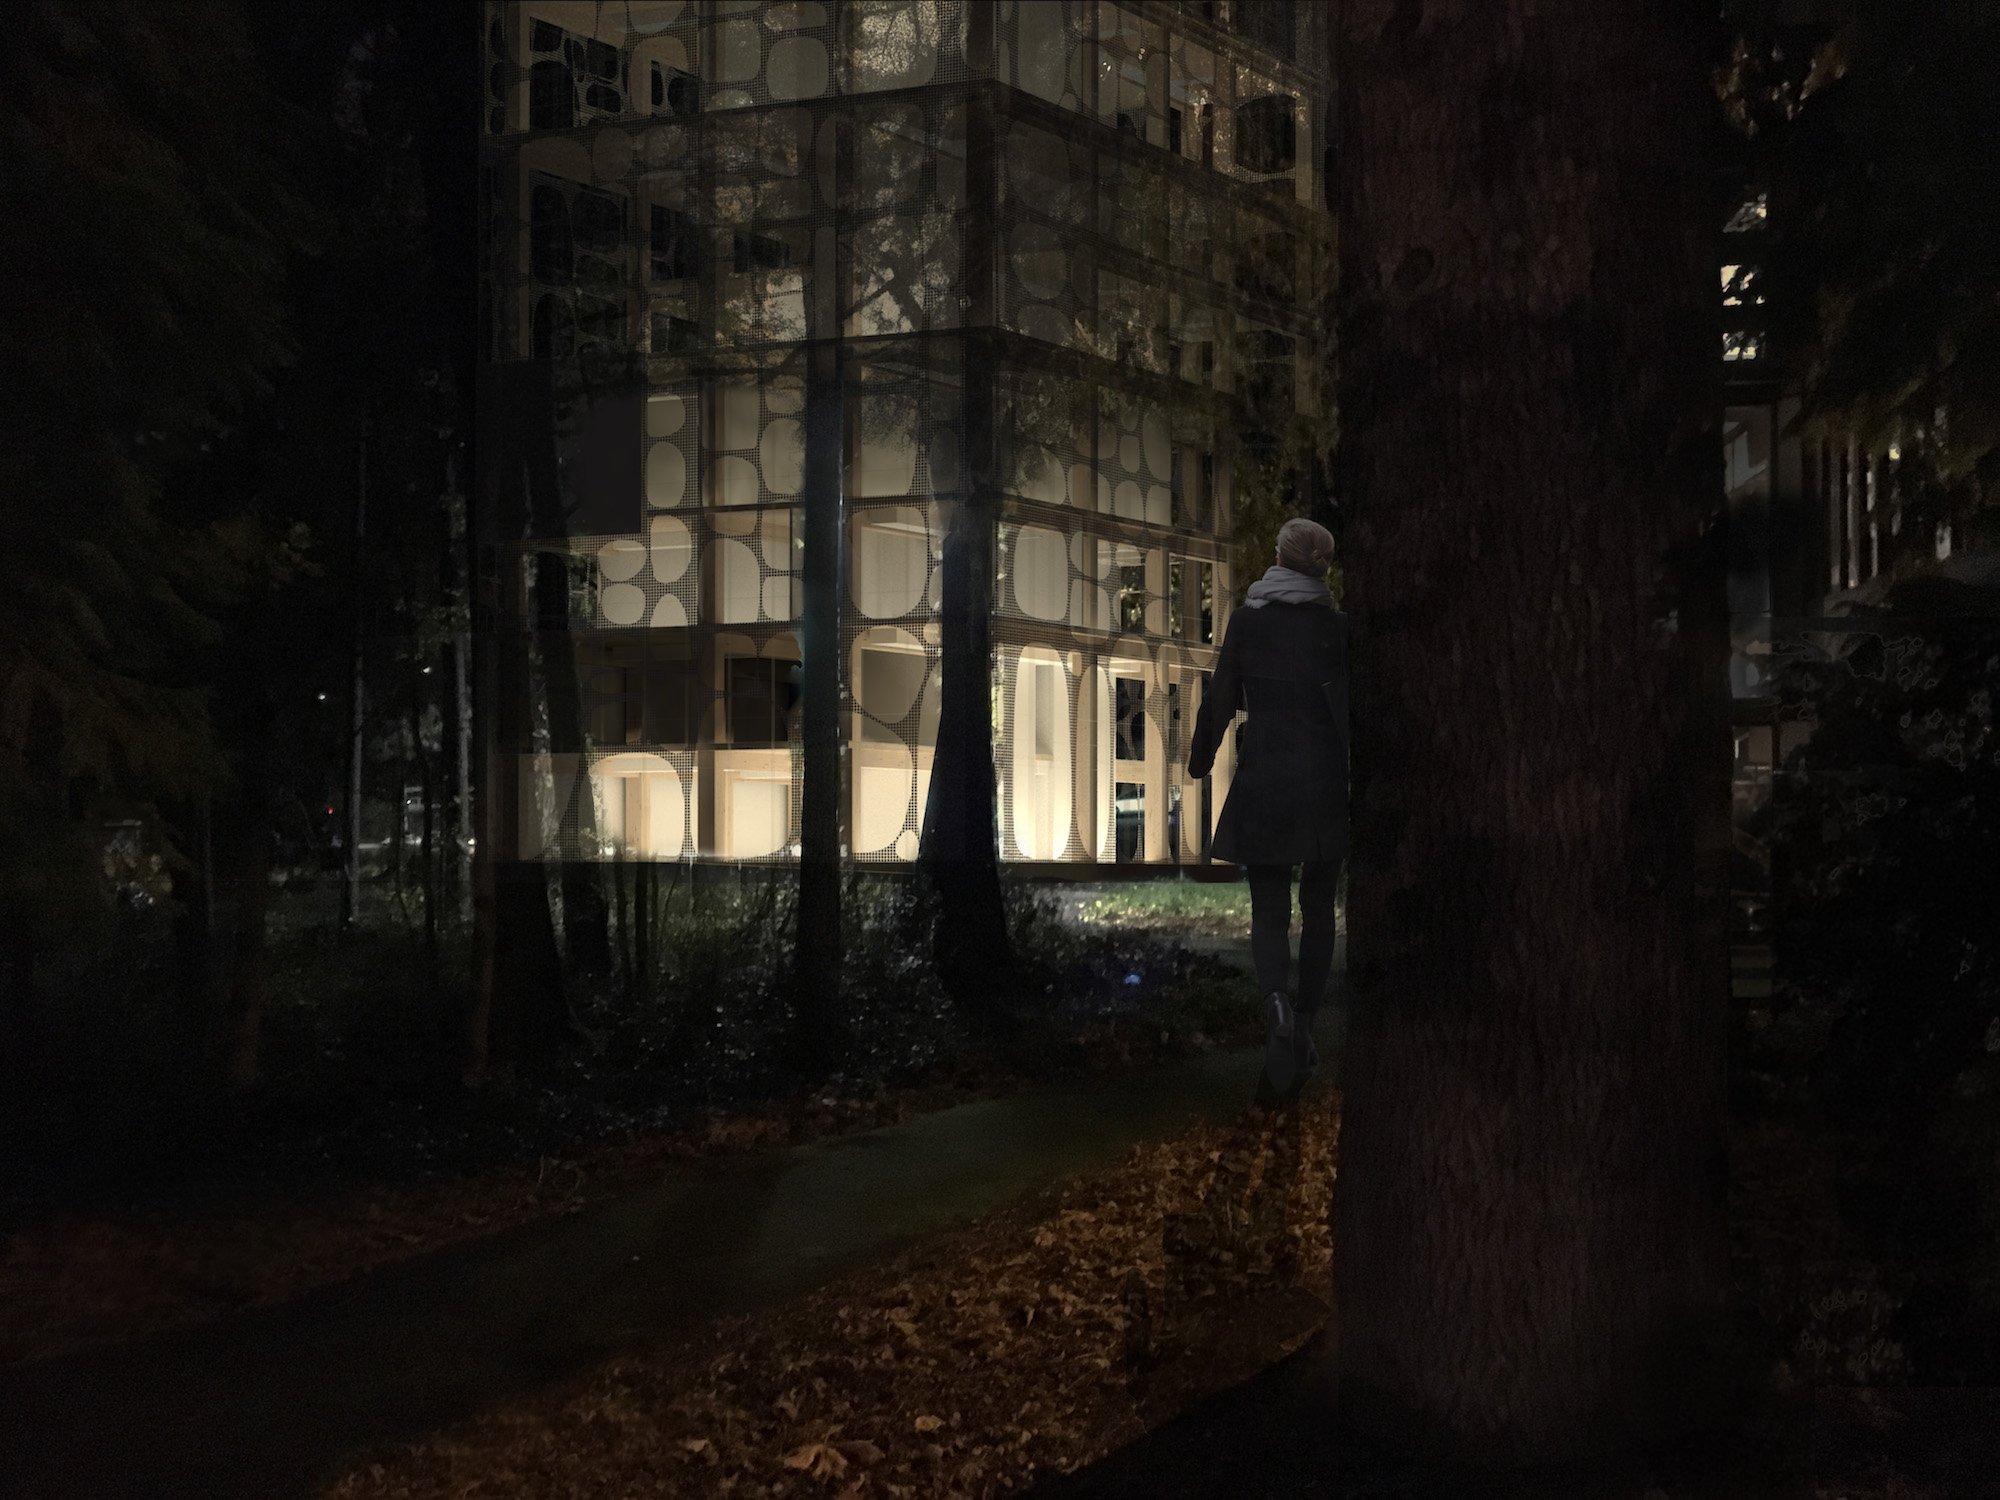 A rendering of the UW Center for Wood Innovation at night (Rendering by Madeleine Black)